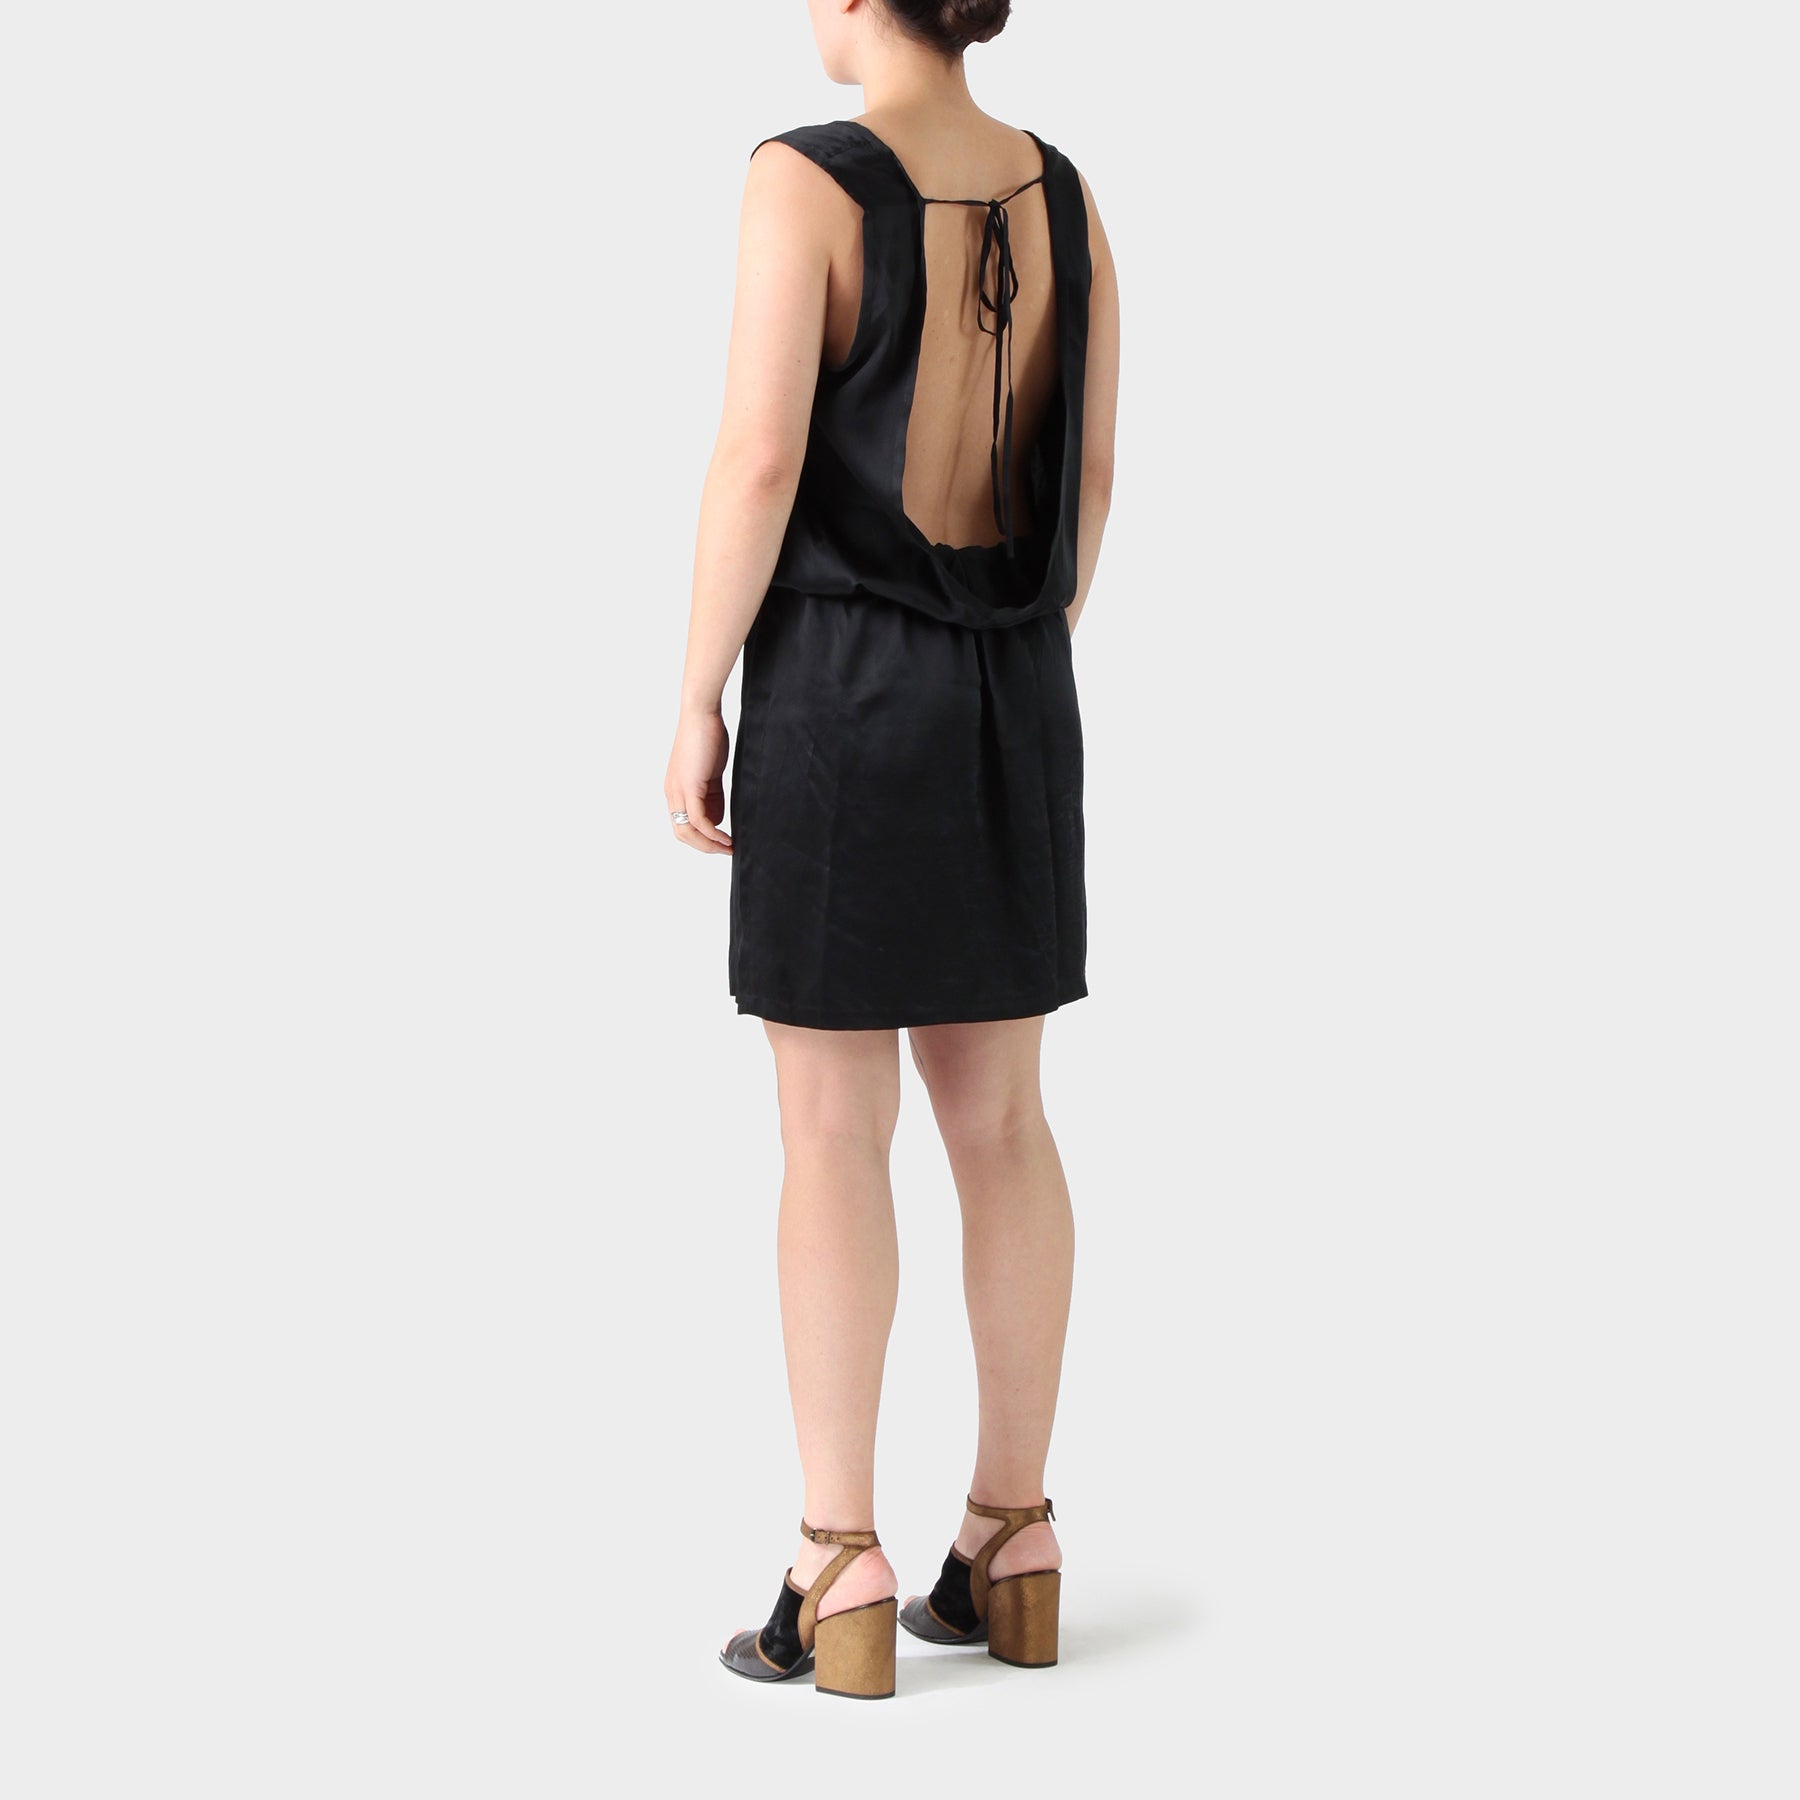 Ann Demeulemeester Silk Dress